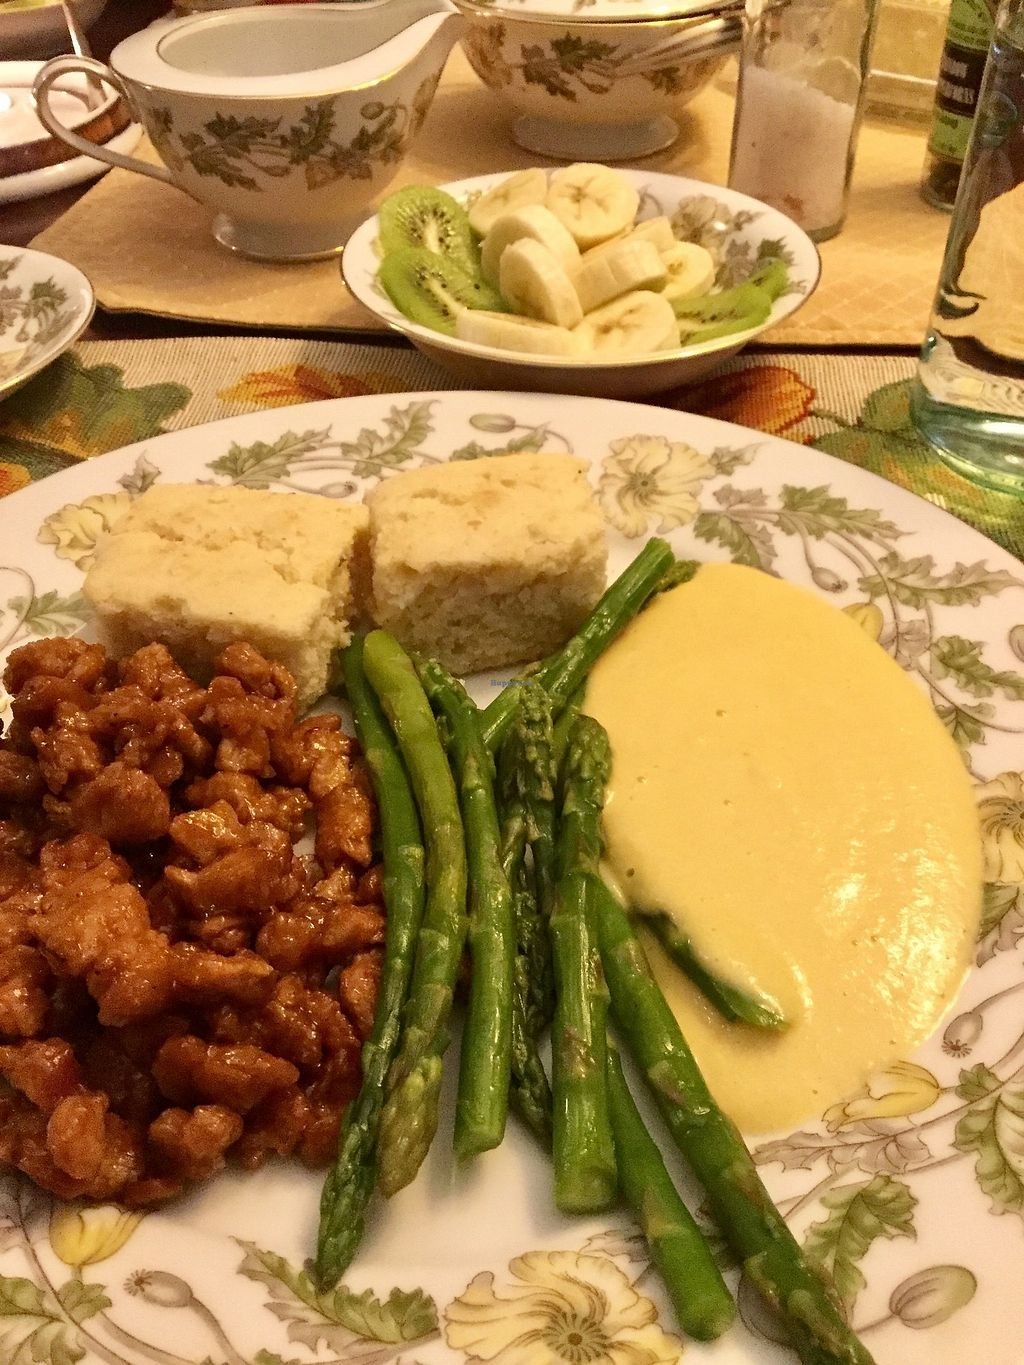 """Photo of The Cherokee Rose Inn  by <a href=""""/members/profile/eveyxvx"""">eveyxvx</a> <br/>BBQ soy curls, cornbread, asparagus, cashew cheese sauce <br/> October 27, 2017  - <a href='/contact/abuse/image/29423/319280'>Report</a>"""